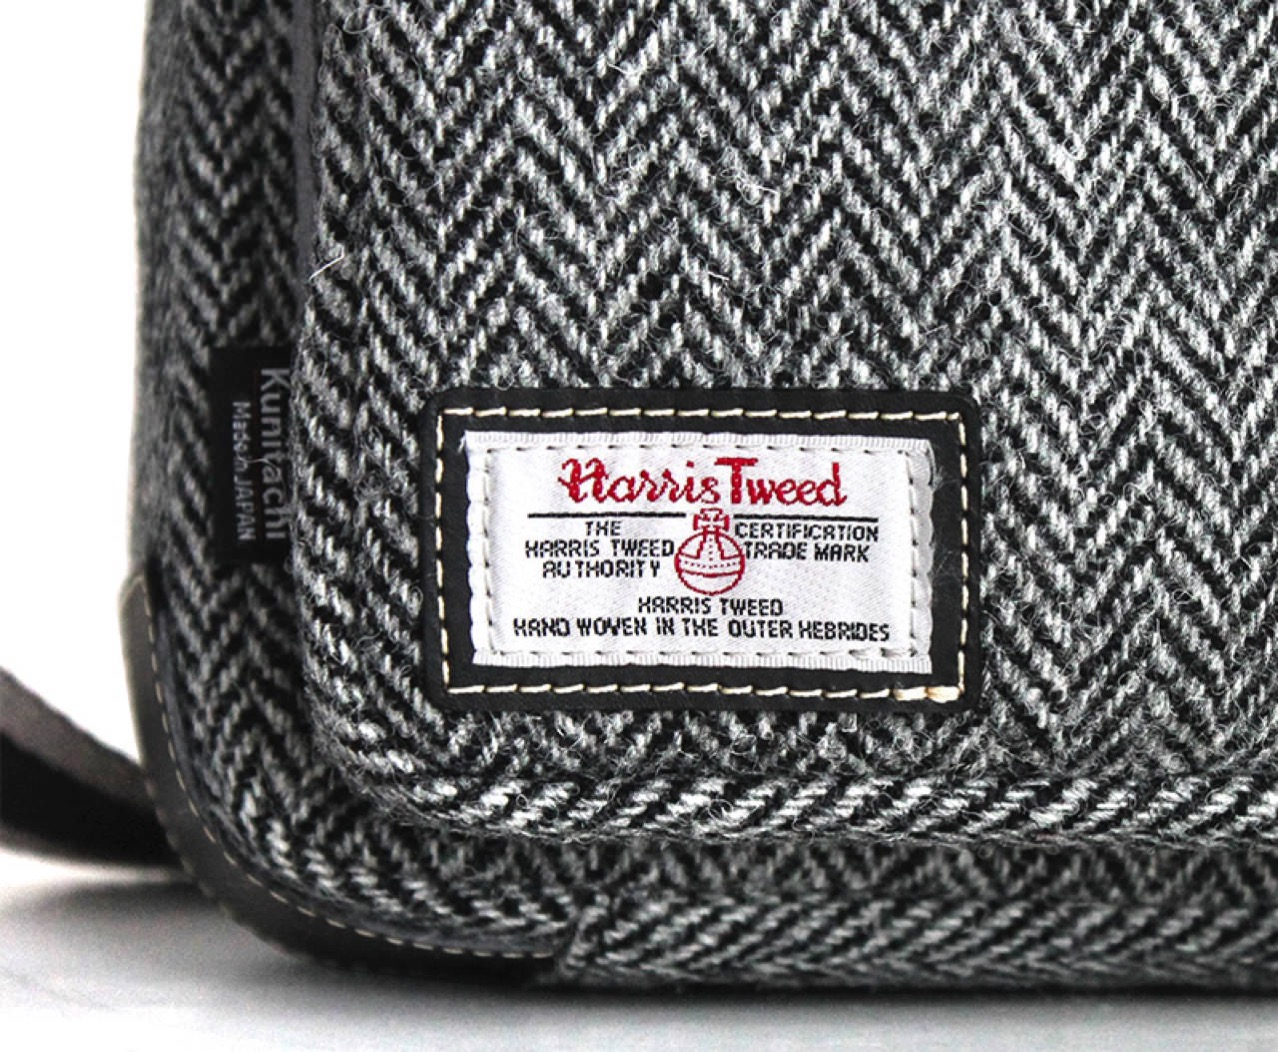 Kunitachi small shoulder bag harris tweed bespoke model for tablet2